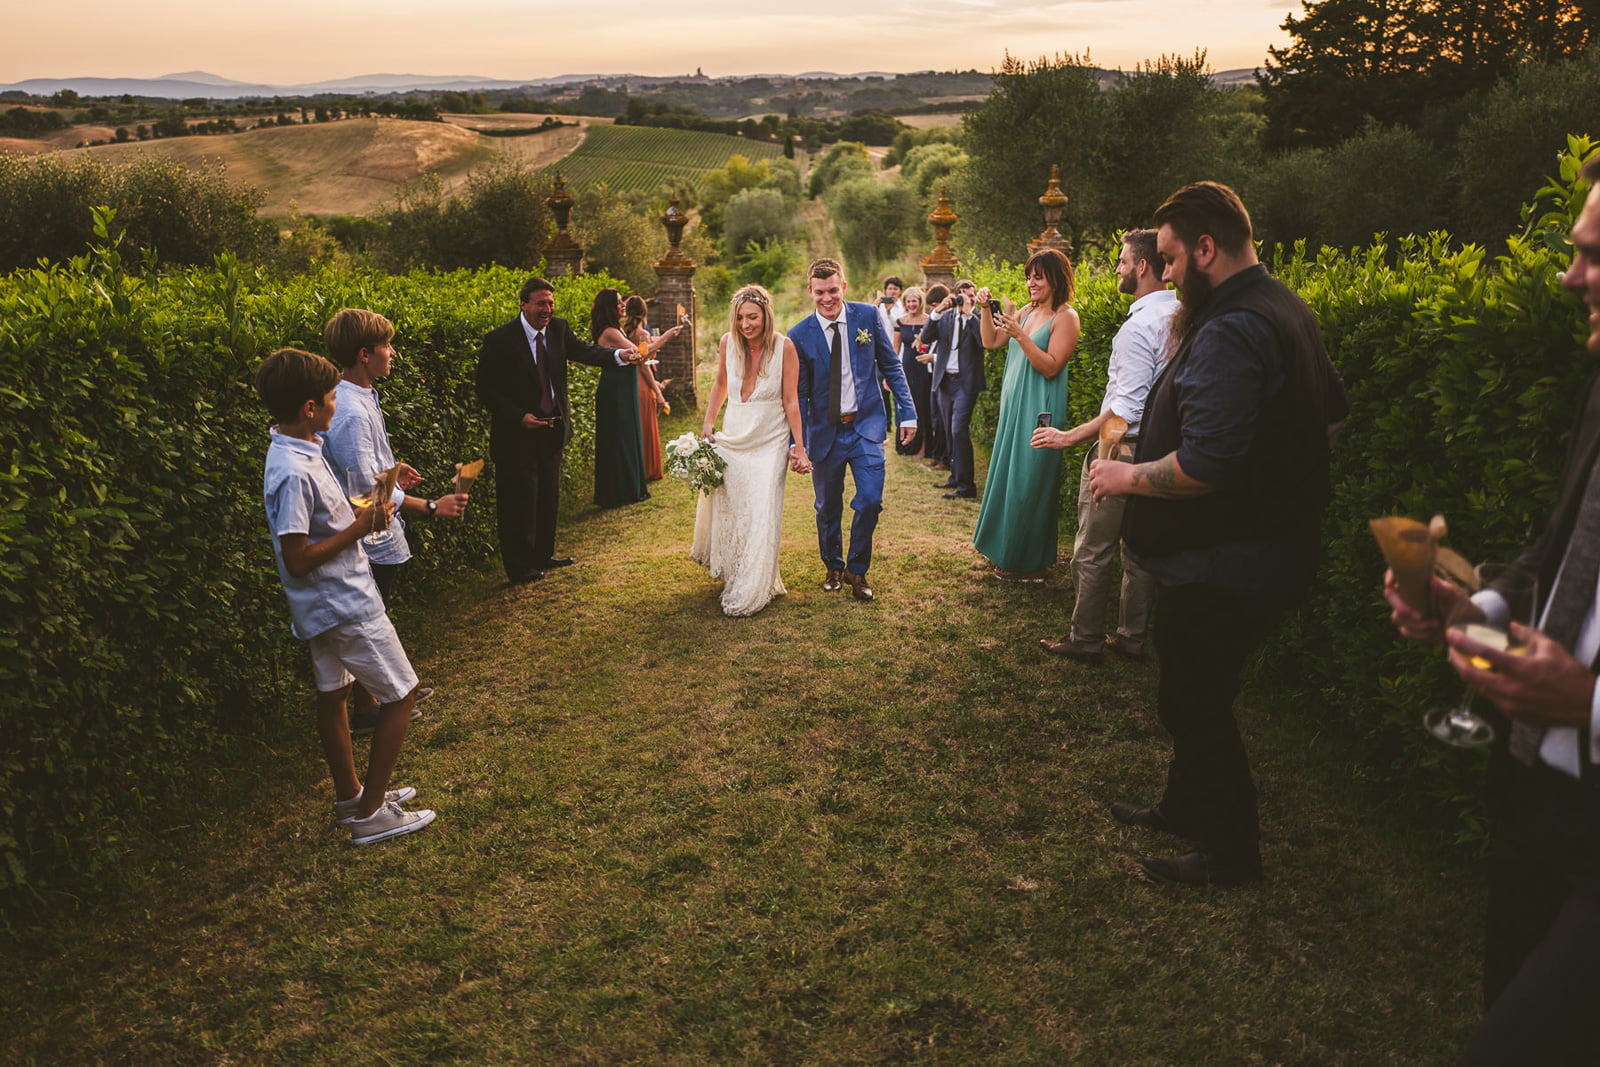 A+L Wedding at Montechiaro, Siena by Federico Pannacci 94